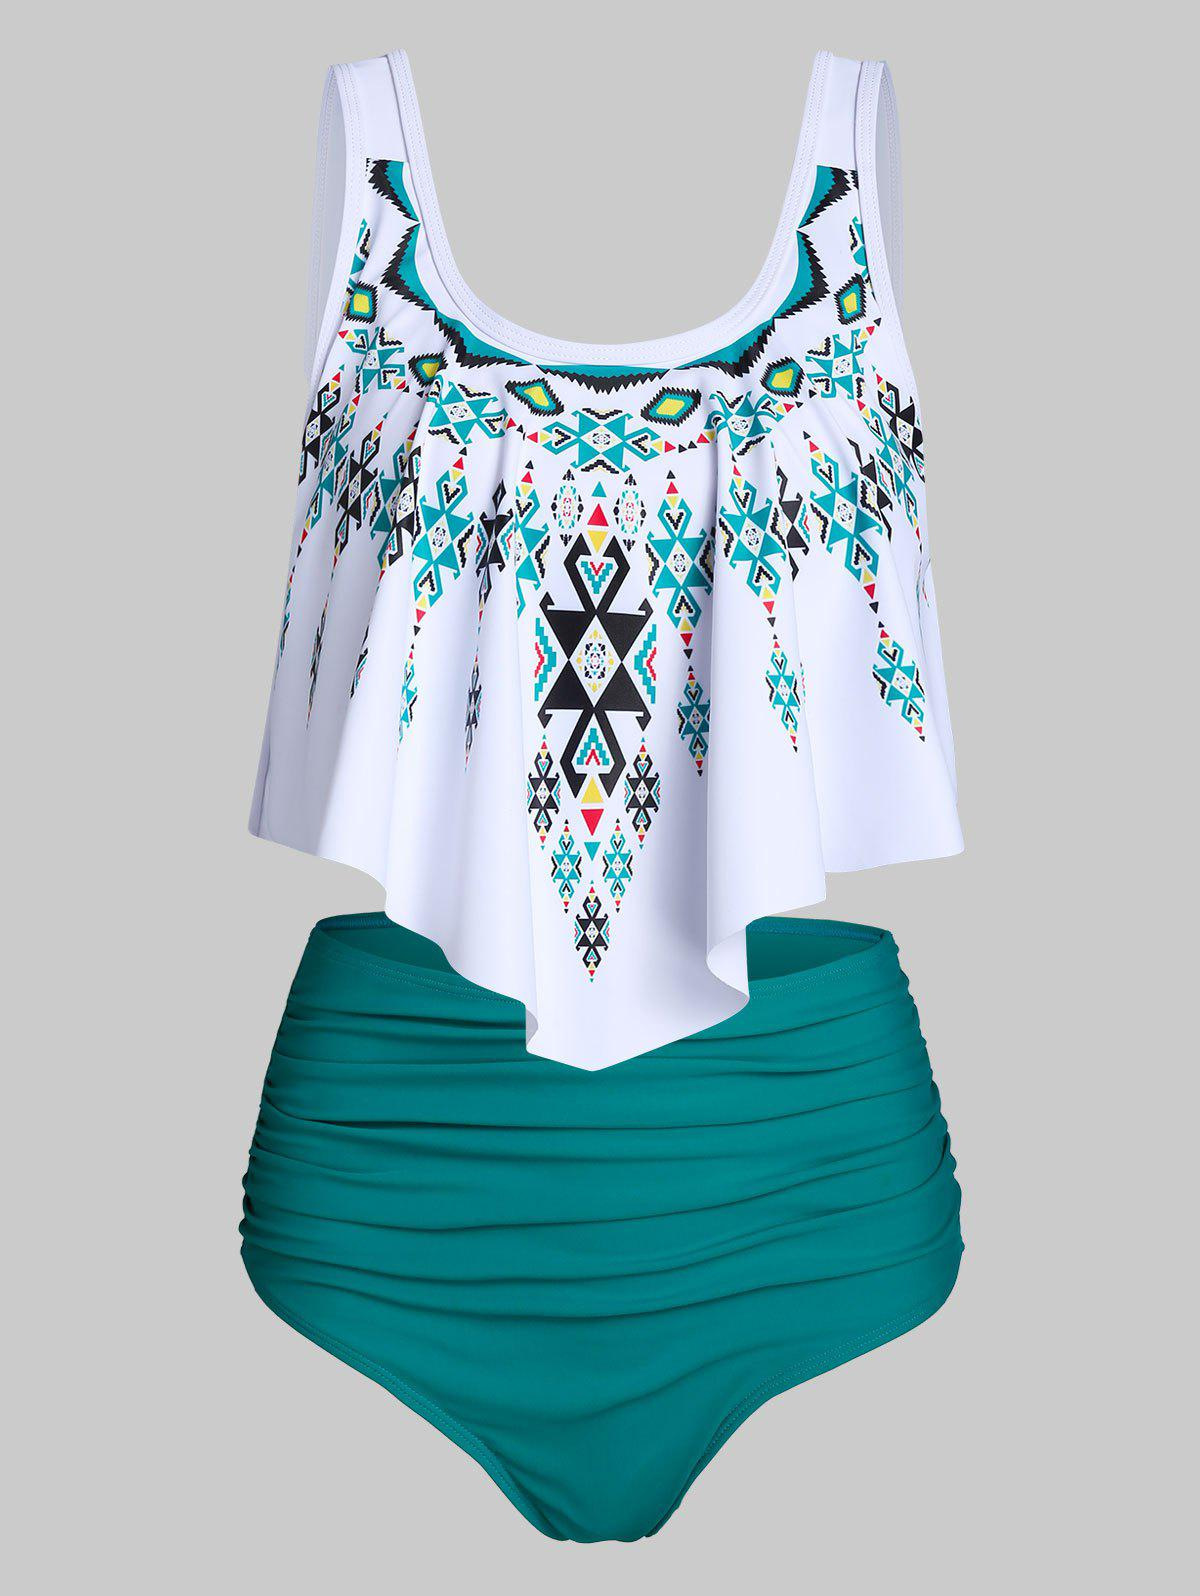 Ethnic Geometric Print High Waisted Asymmetrical Tankini Swimwear - SEA TURTLE GREEN XL